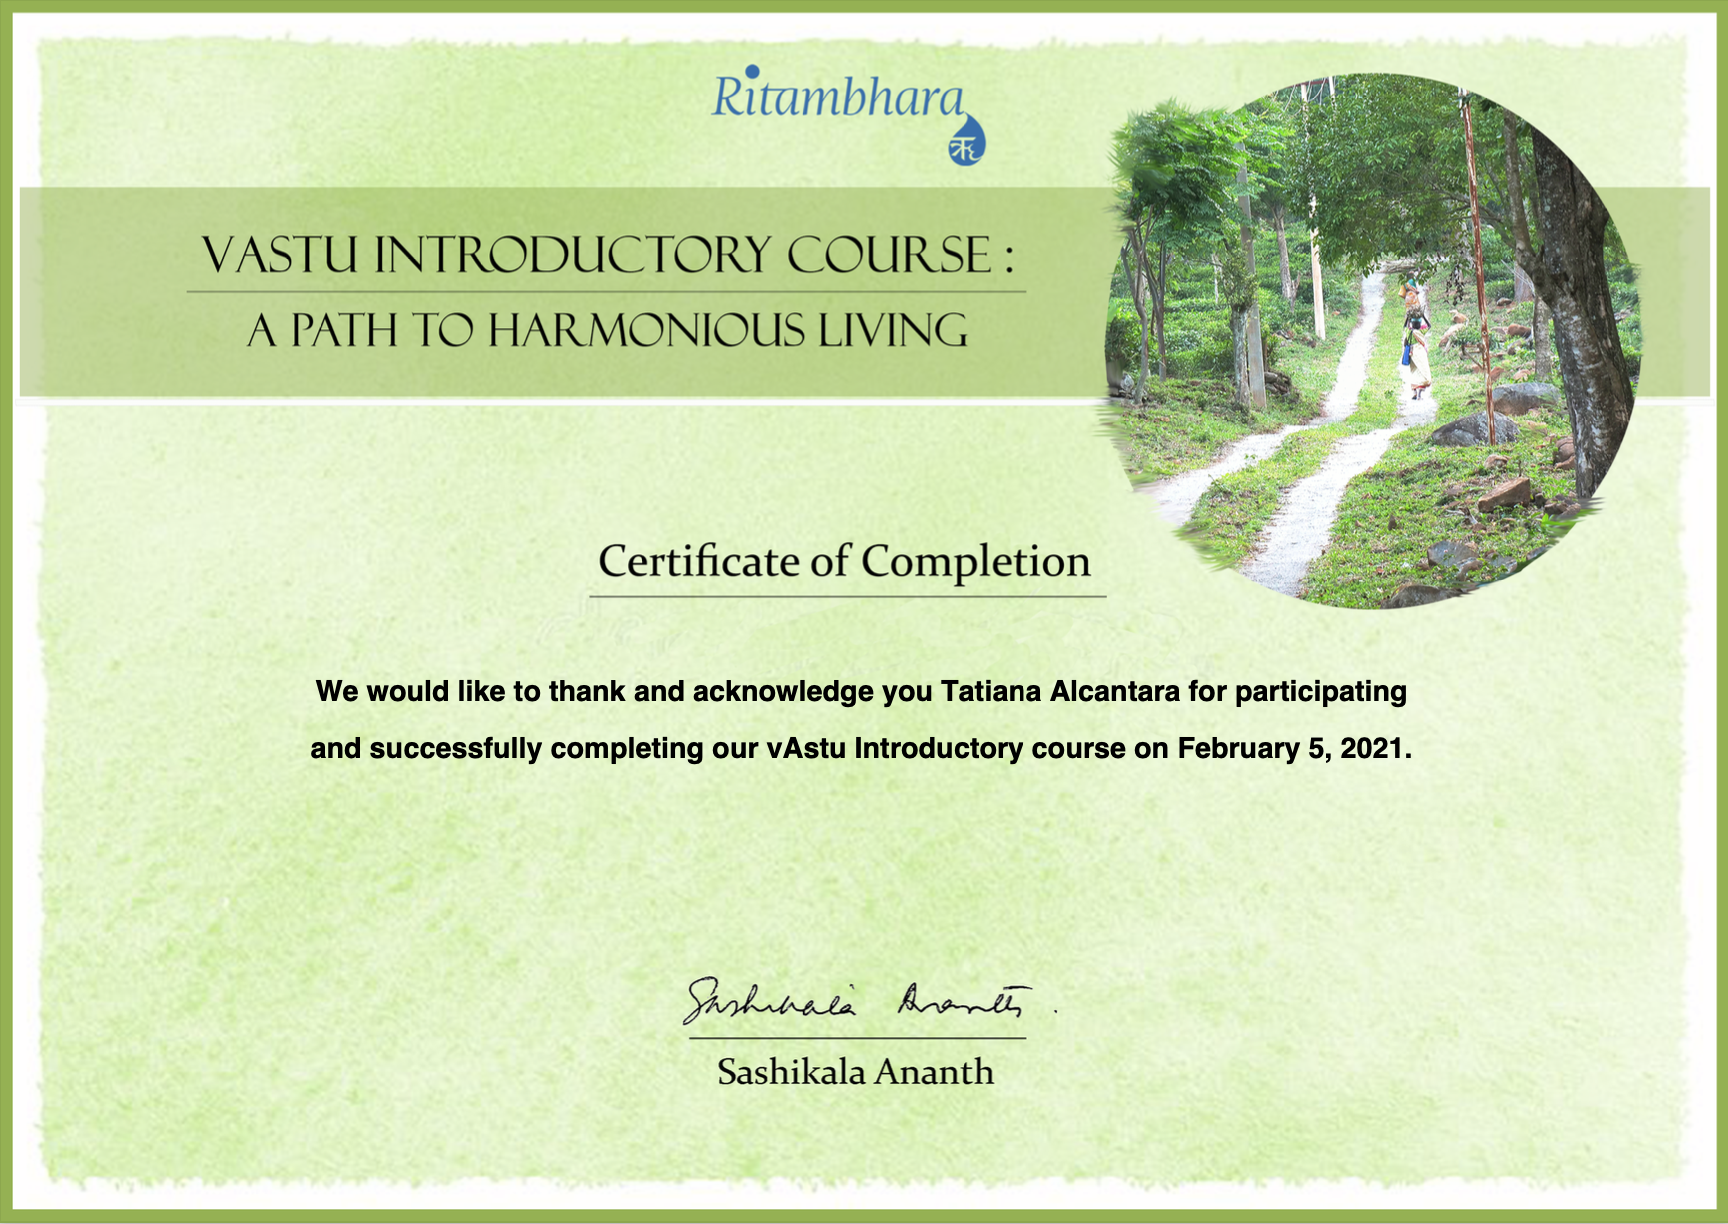 vAstu Introductory Course - A Path to Harmonious Living